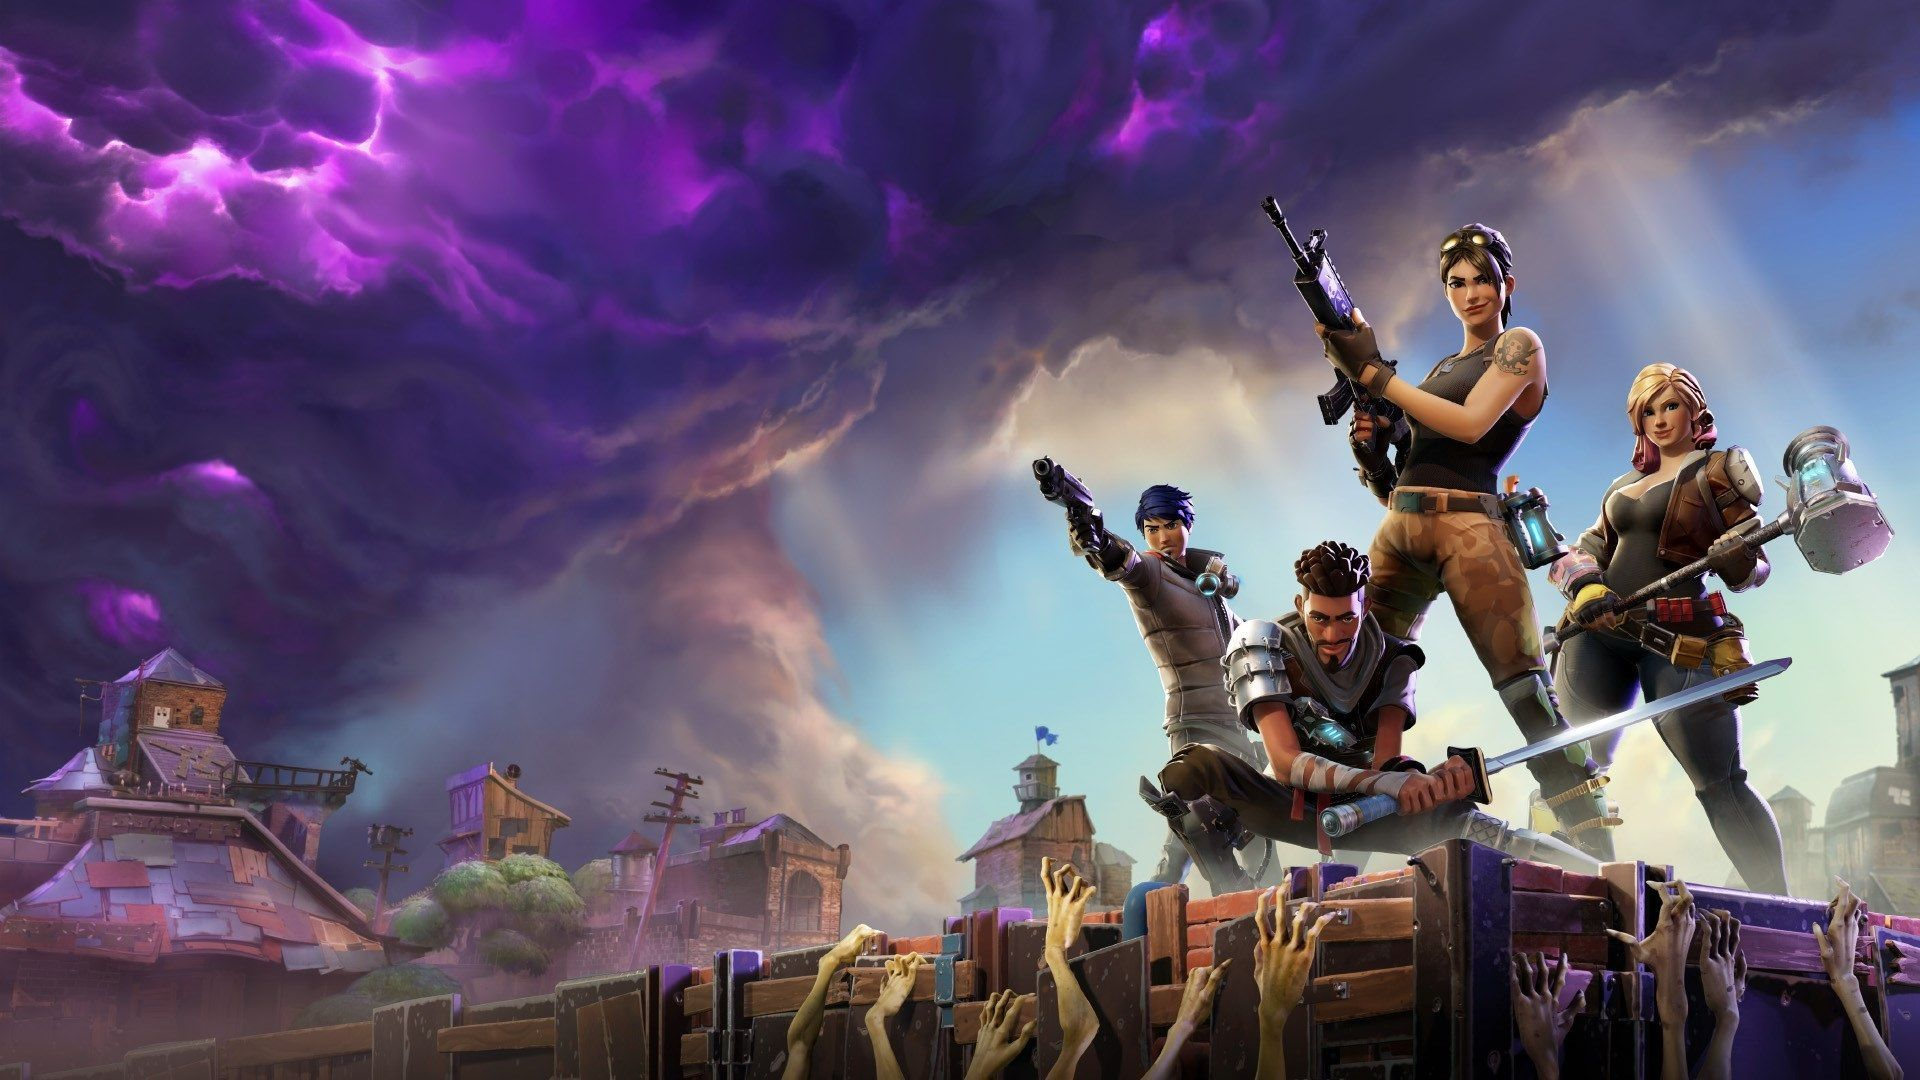 Fortnite 1920X1080 HD Wallpapers   Top Fortnite 1920X1080 HD 1920x1080